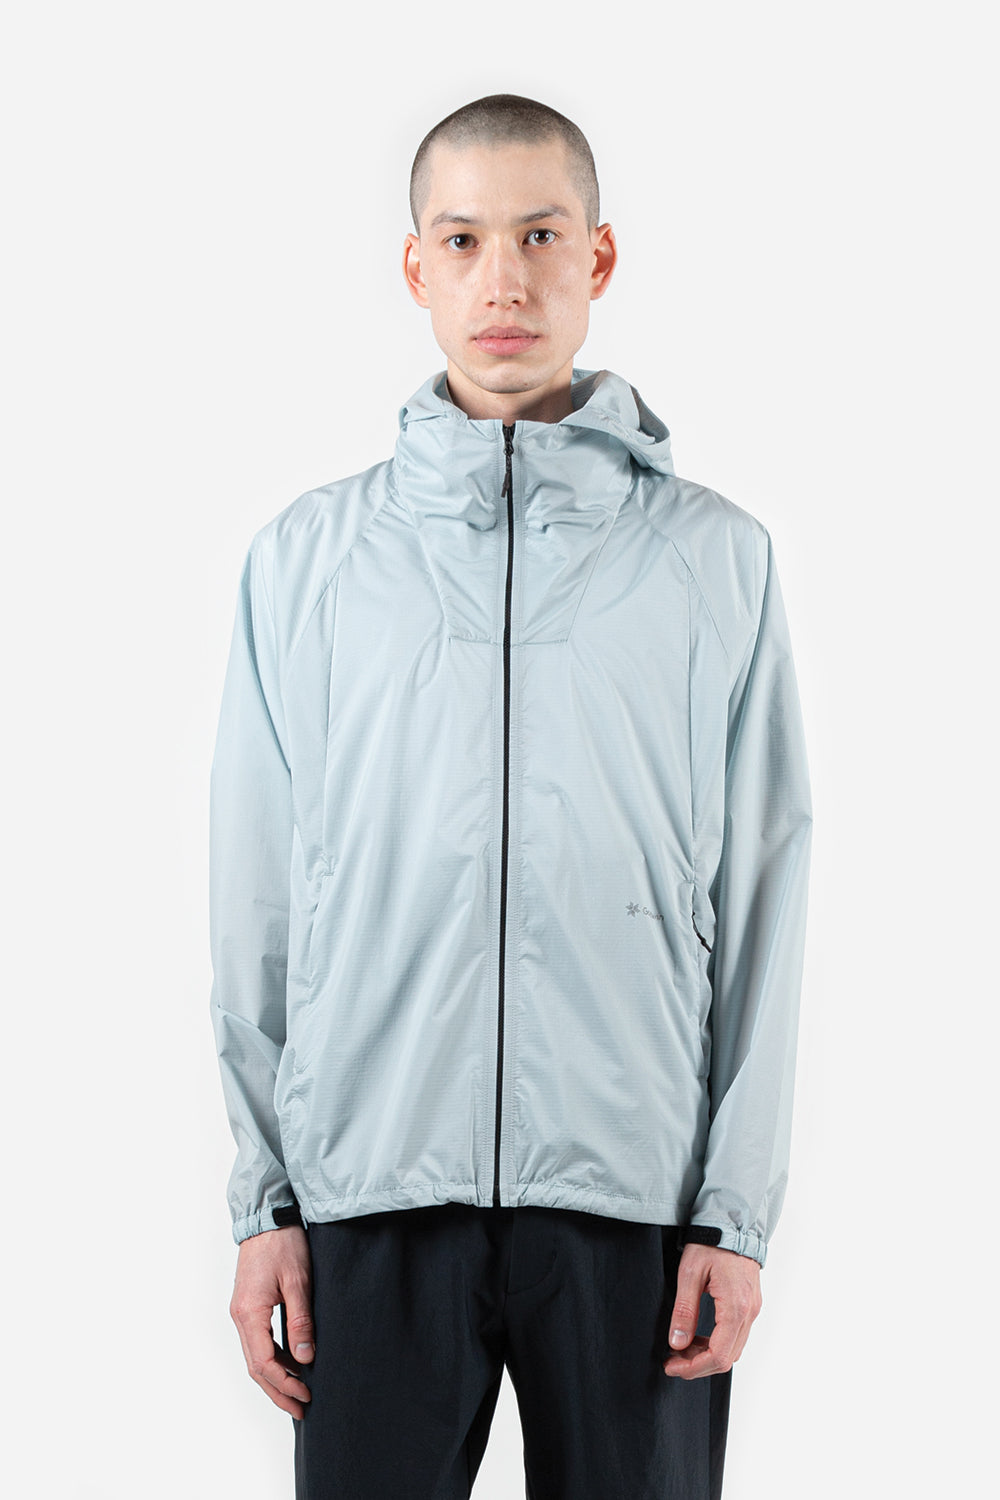 goldwin-versatile-w-cloth-jacket-vapor-gray